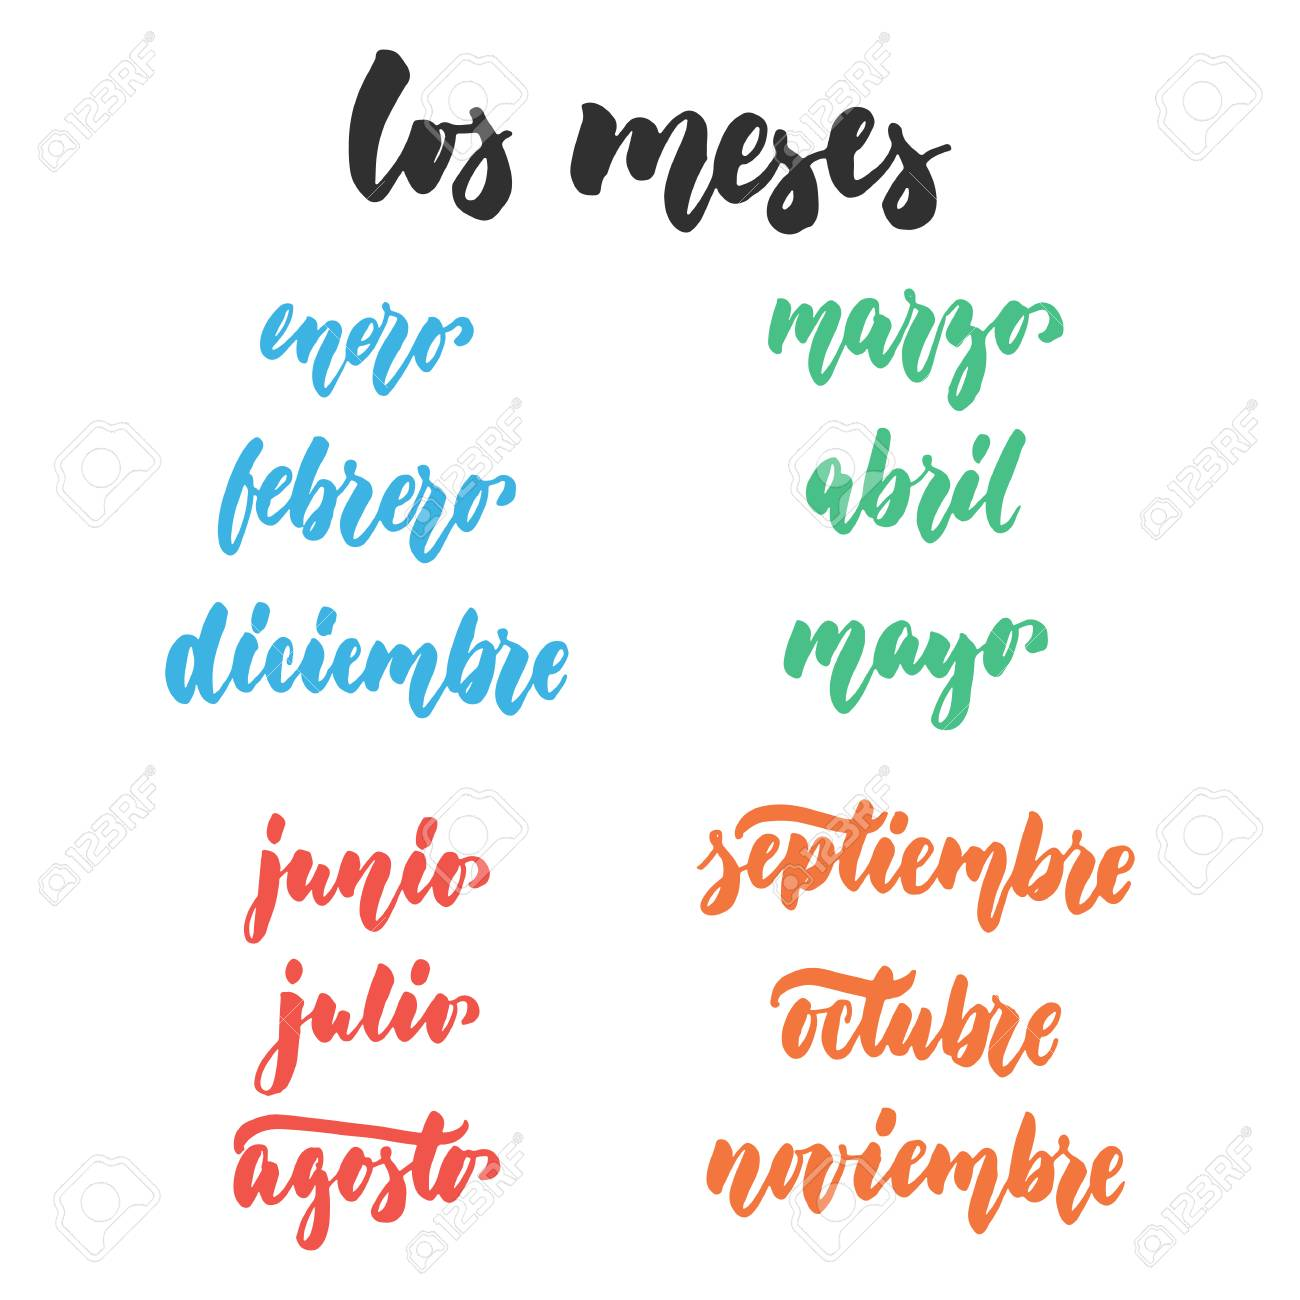 Fotos De Dos Meses Los Meses Months In Spanish Hand Drawn Latin Lettering Quote